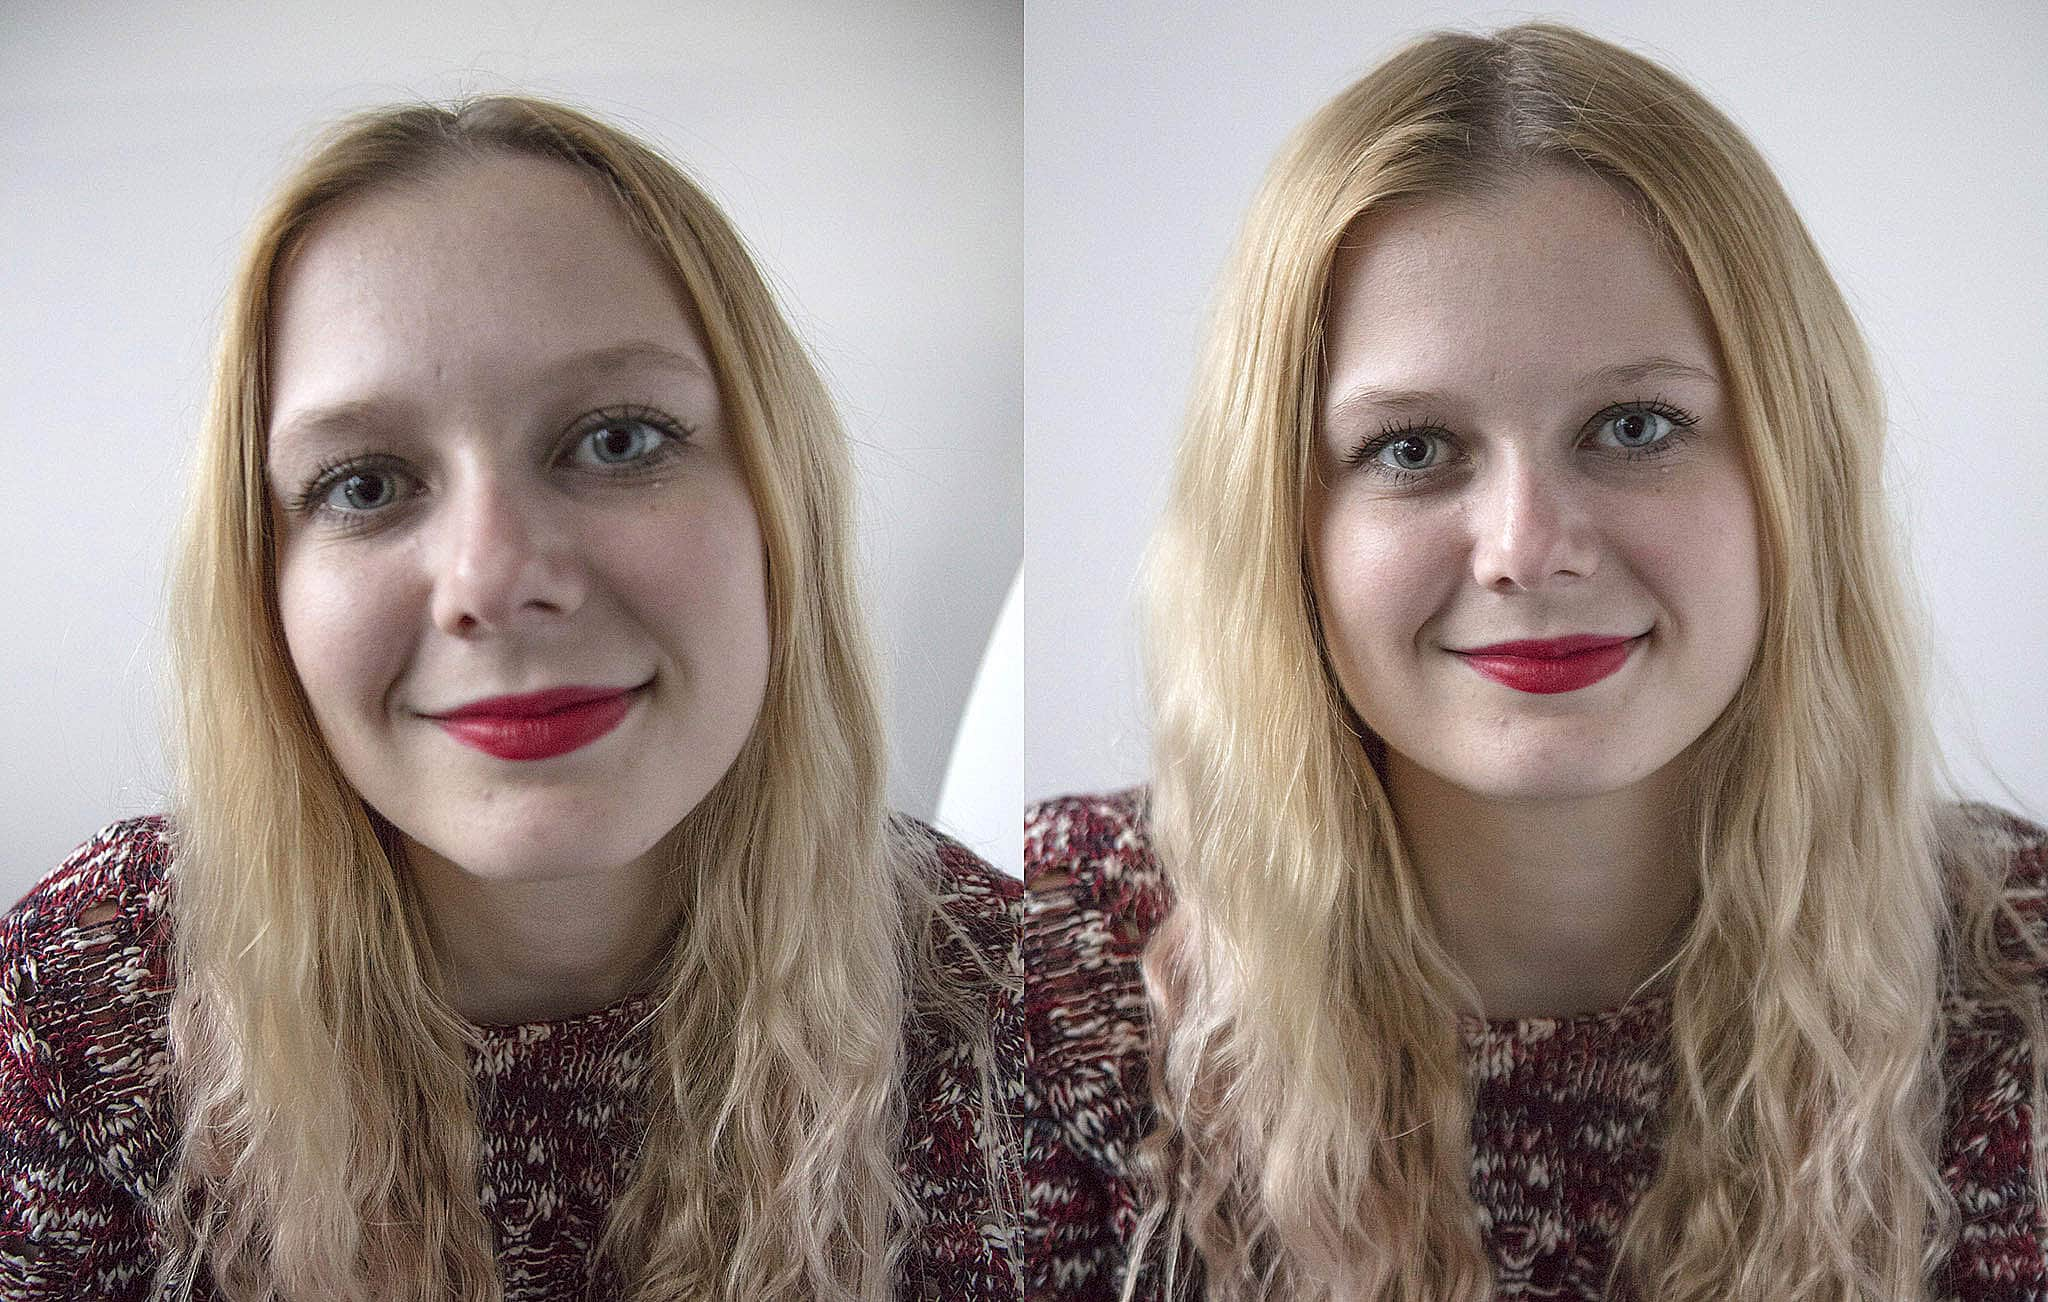 headshot hints and tips, lens selection